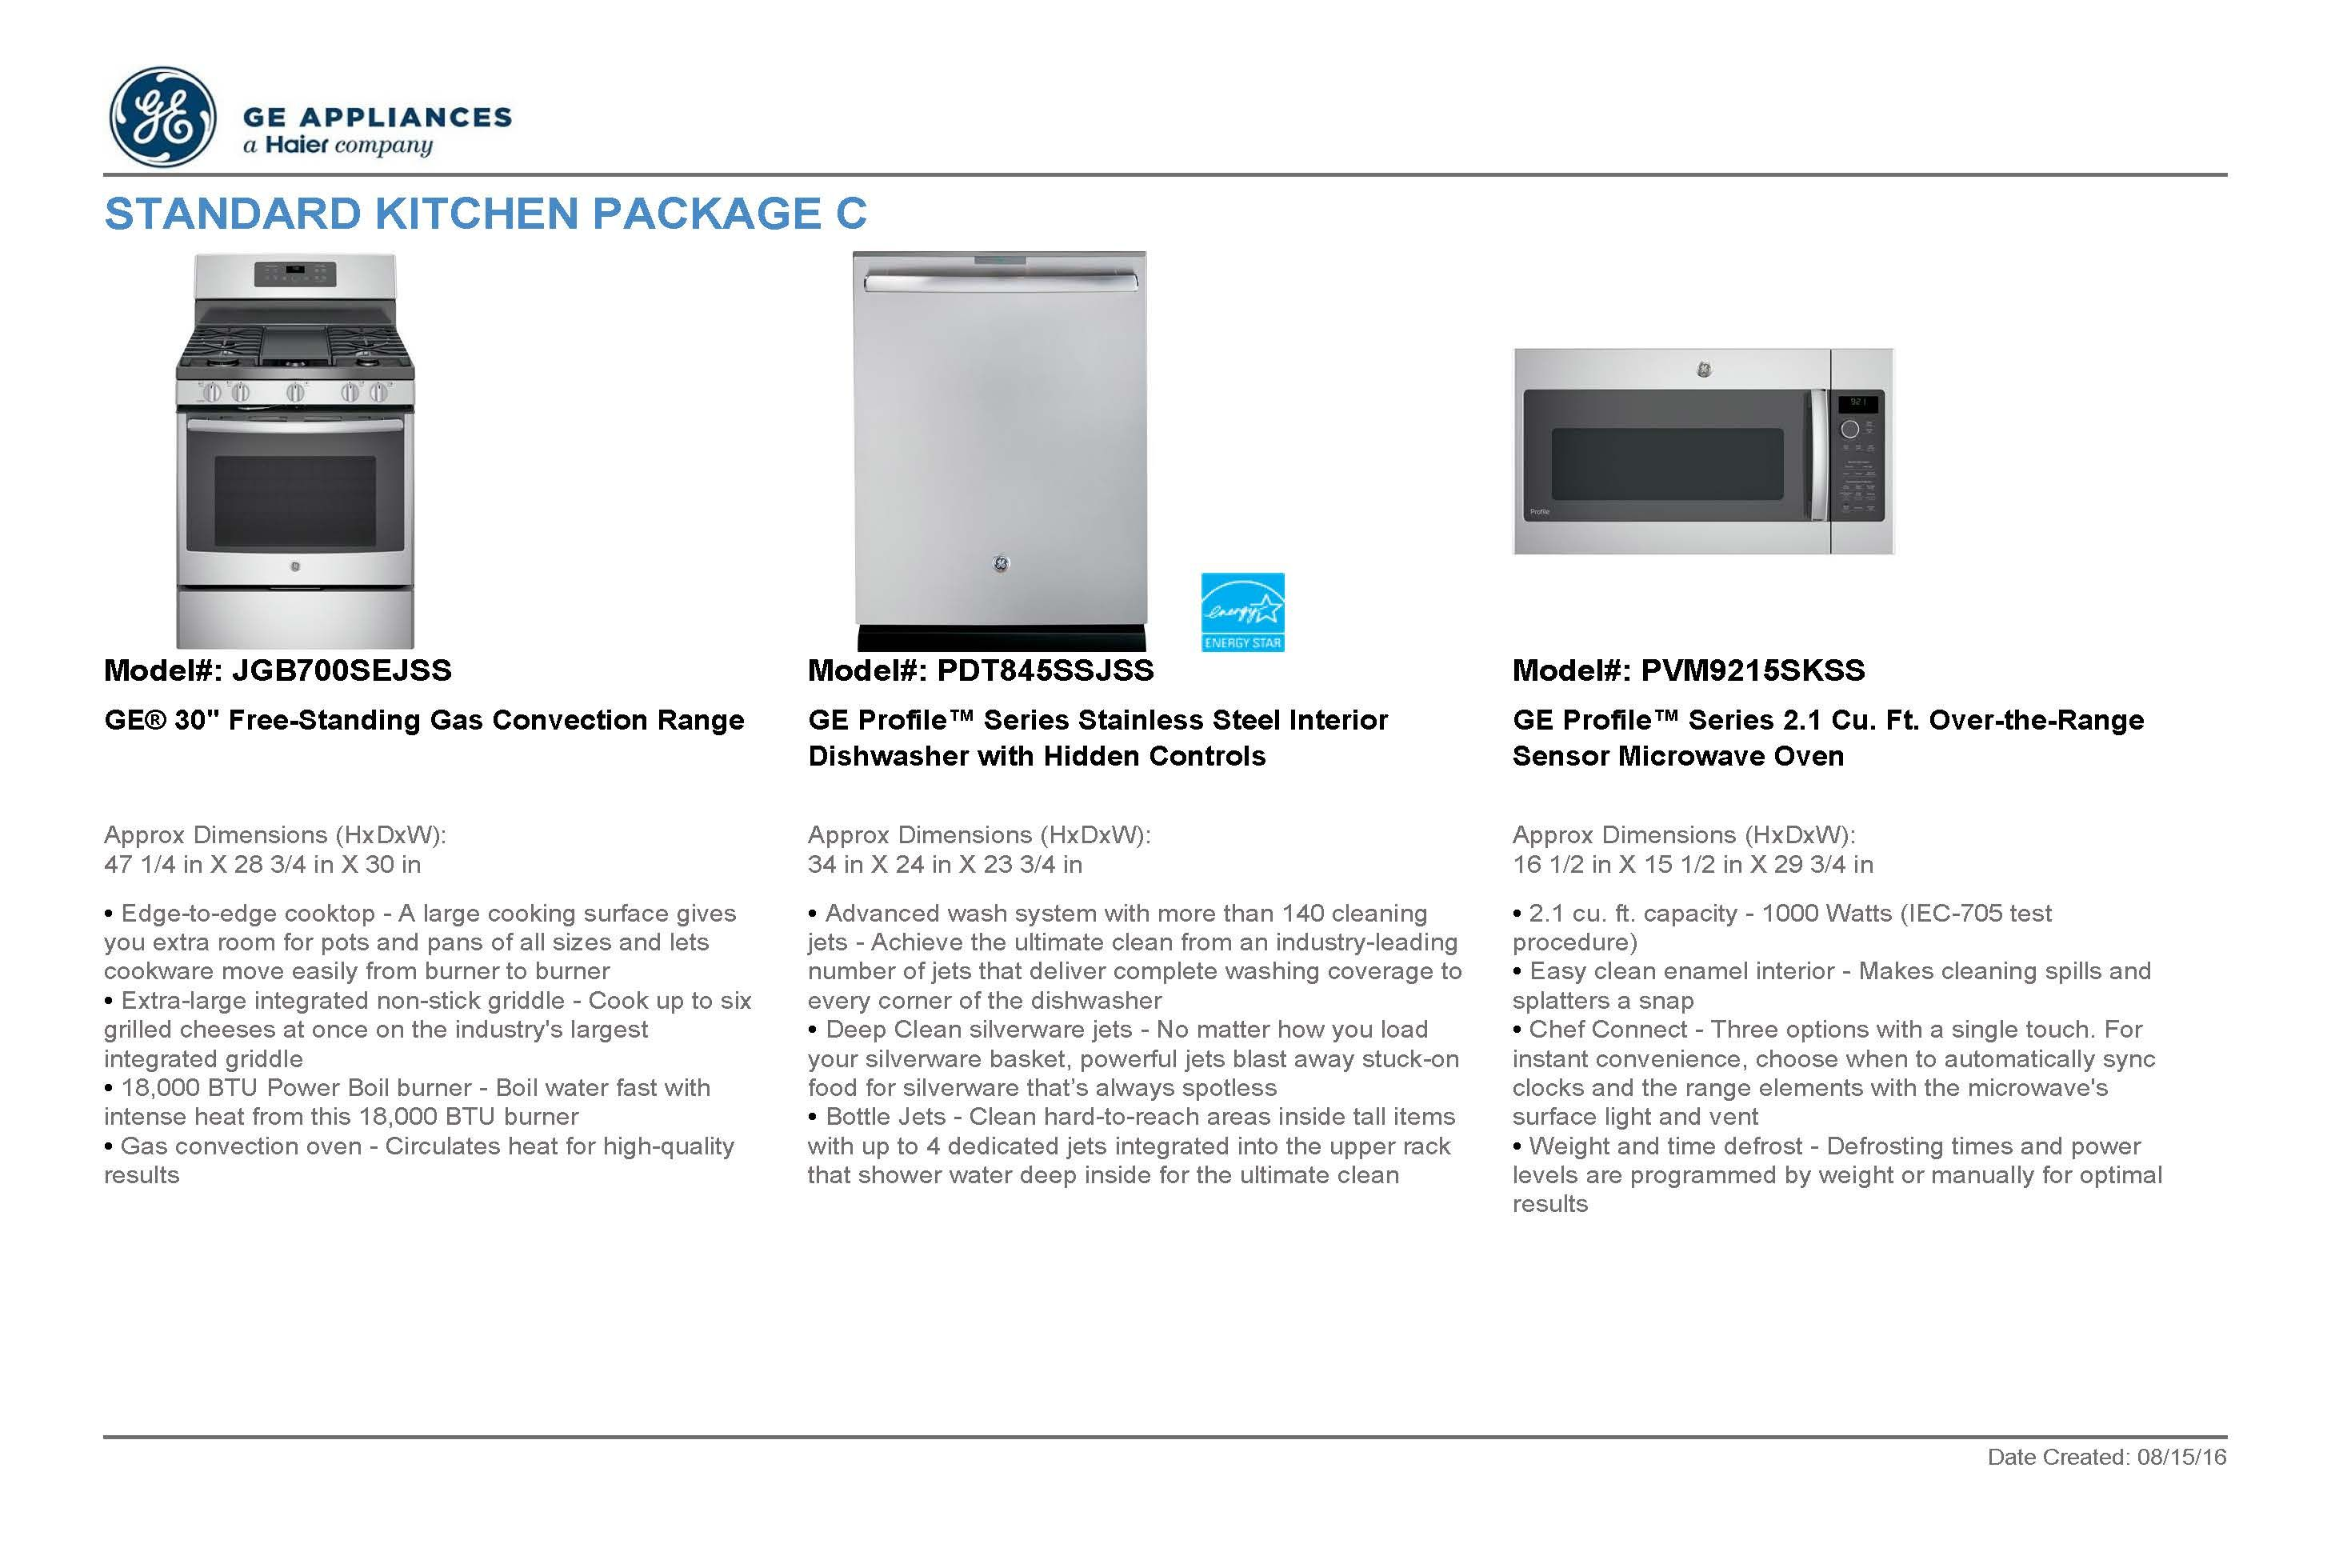 Standard Kitchen Appliances Upgrade Package C Stainless Steel For More Information On Kitchen Appliances Specialty Appliances Kitchen Appliance Packages